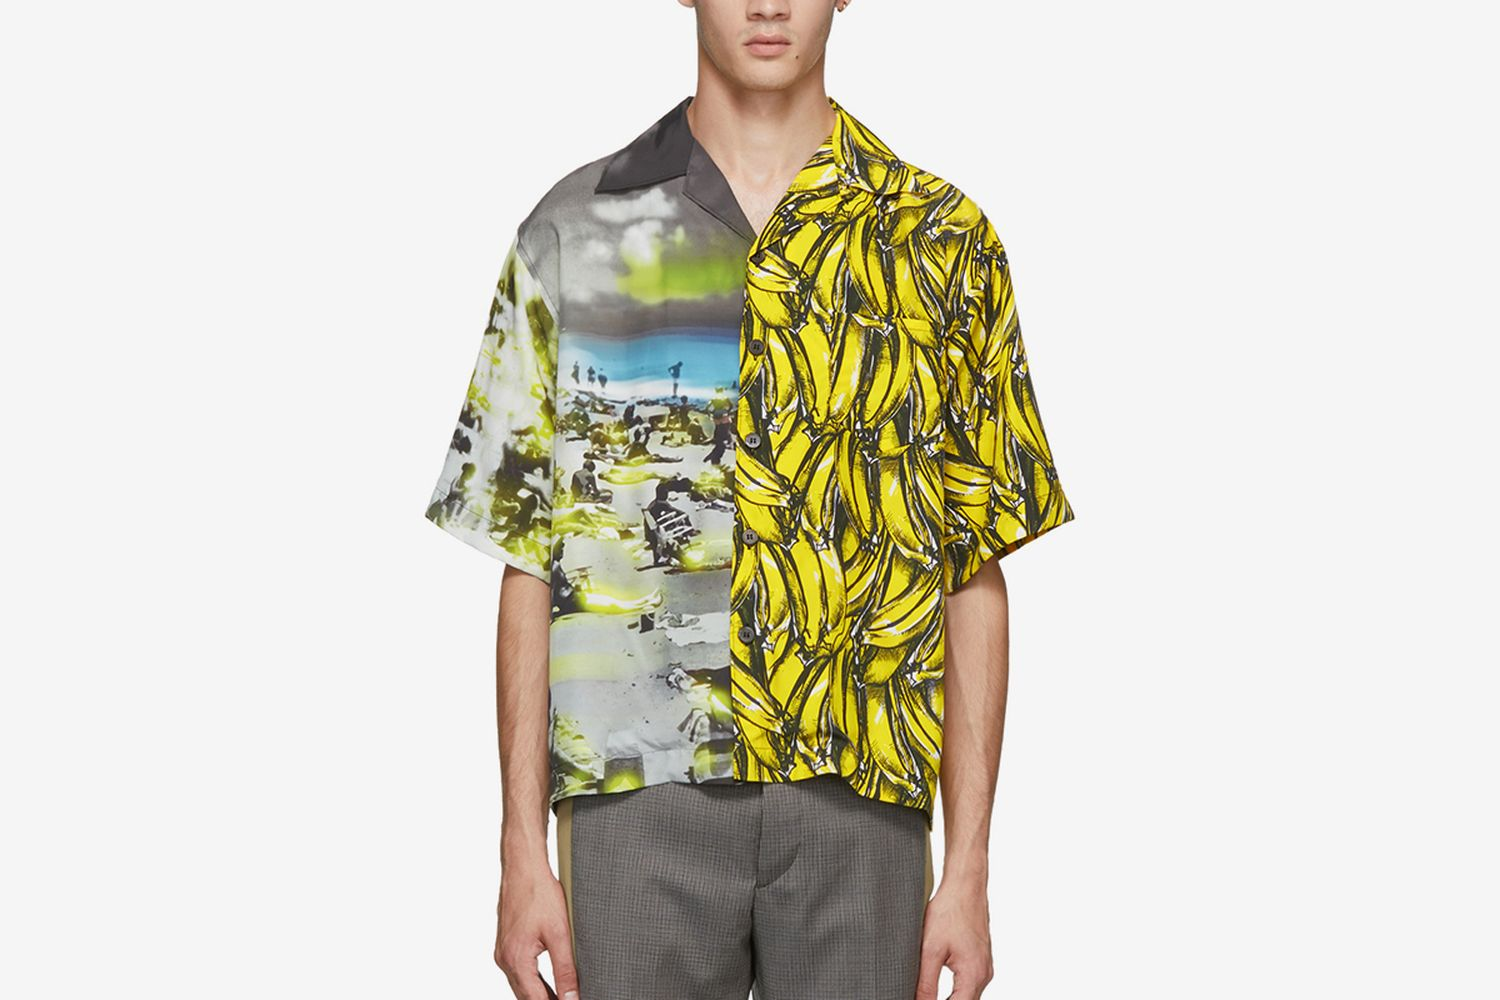 Bananas & Cartoon Shirt